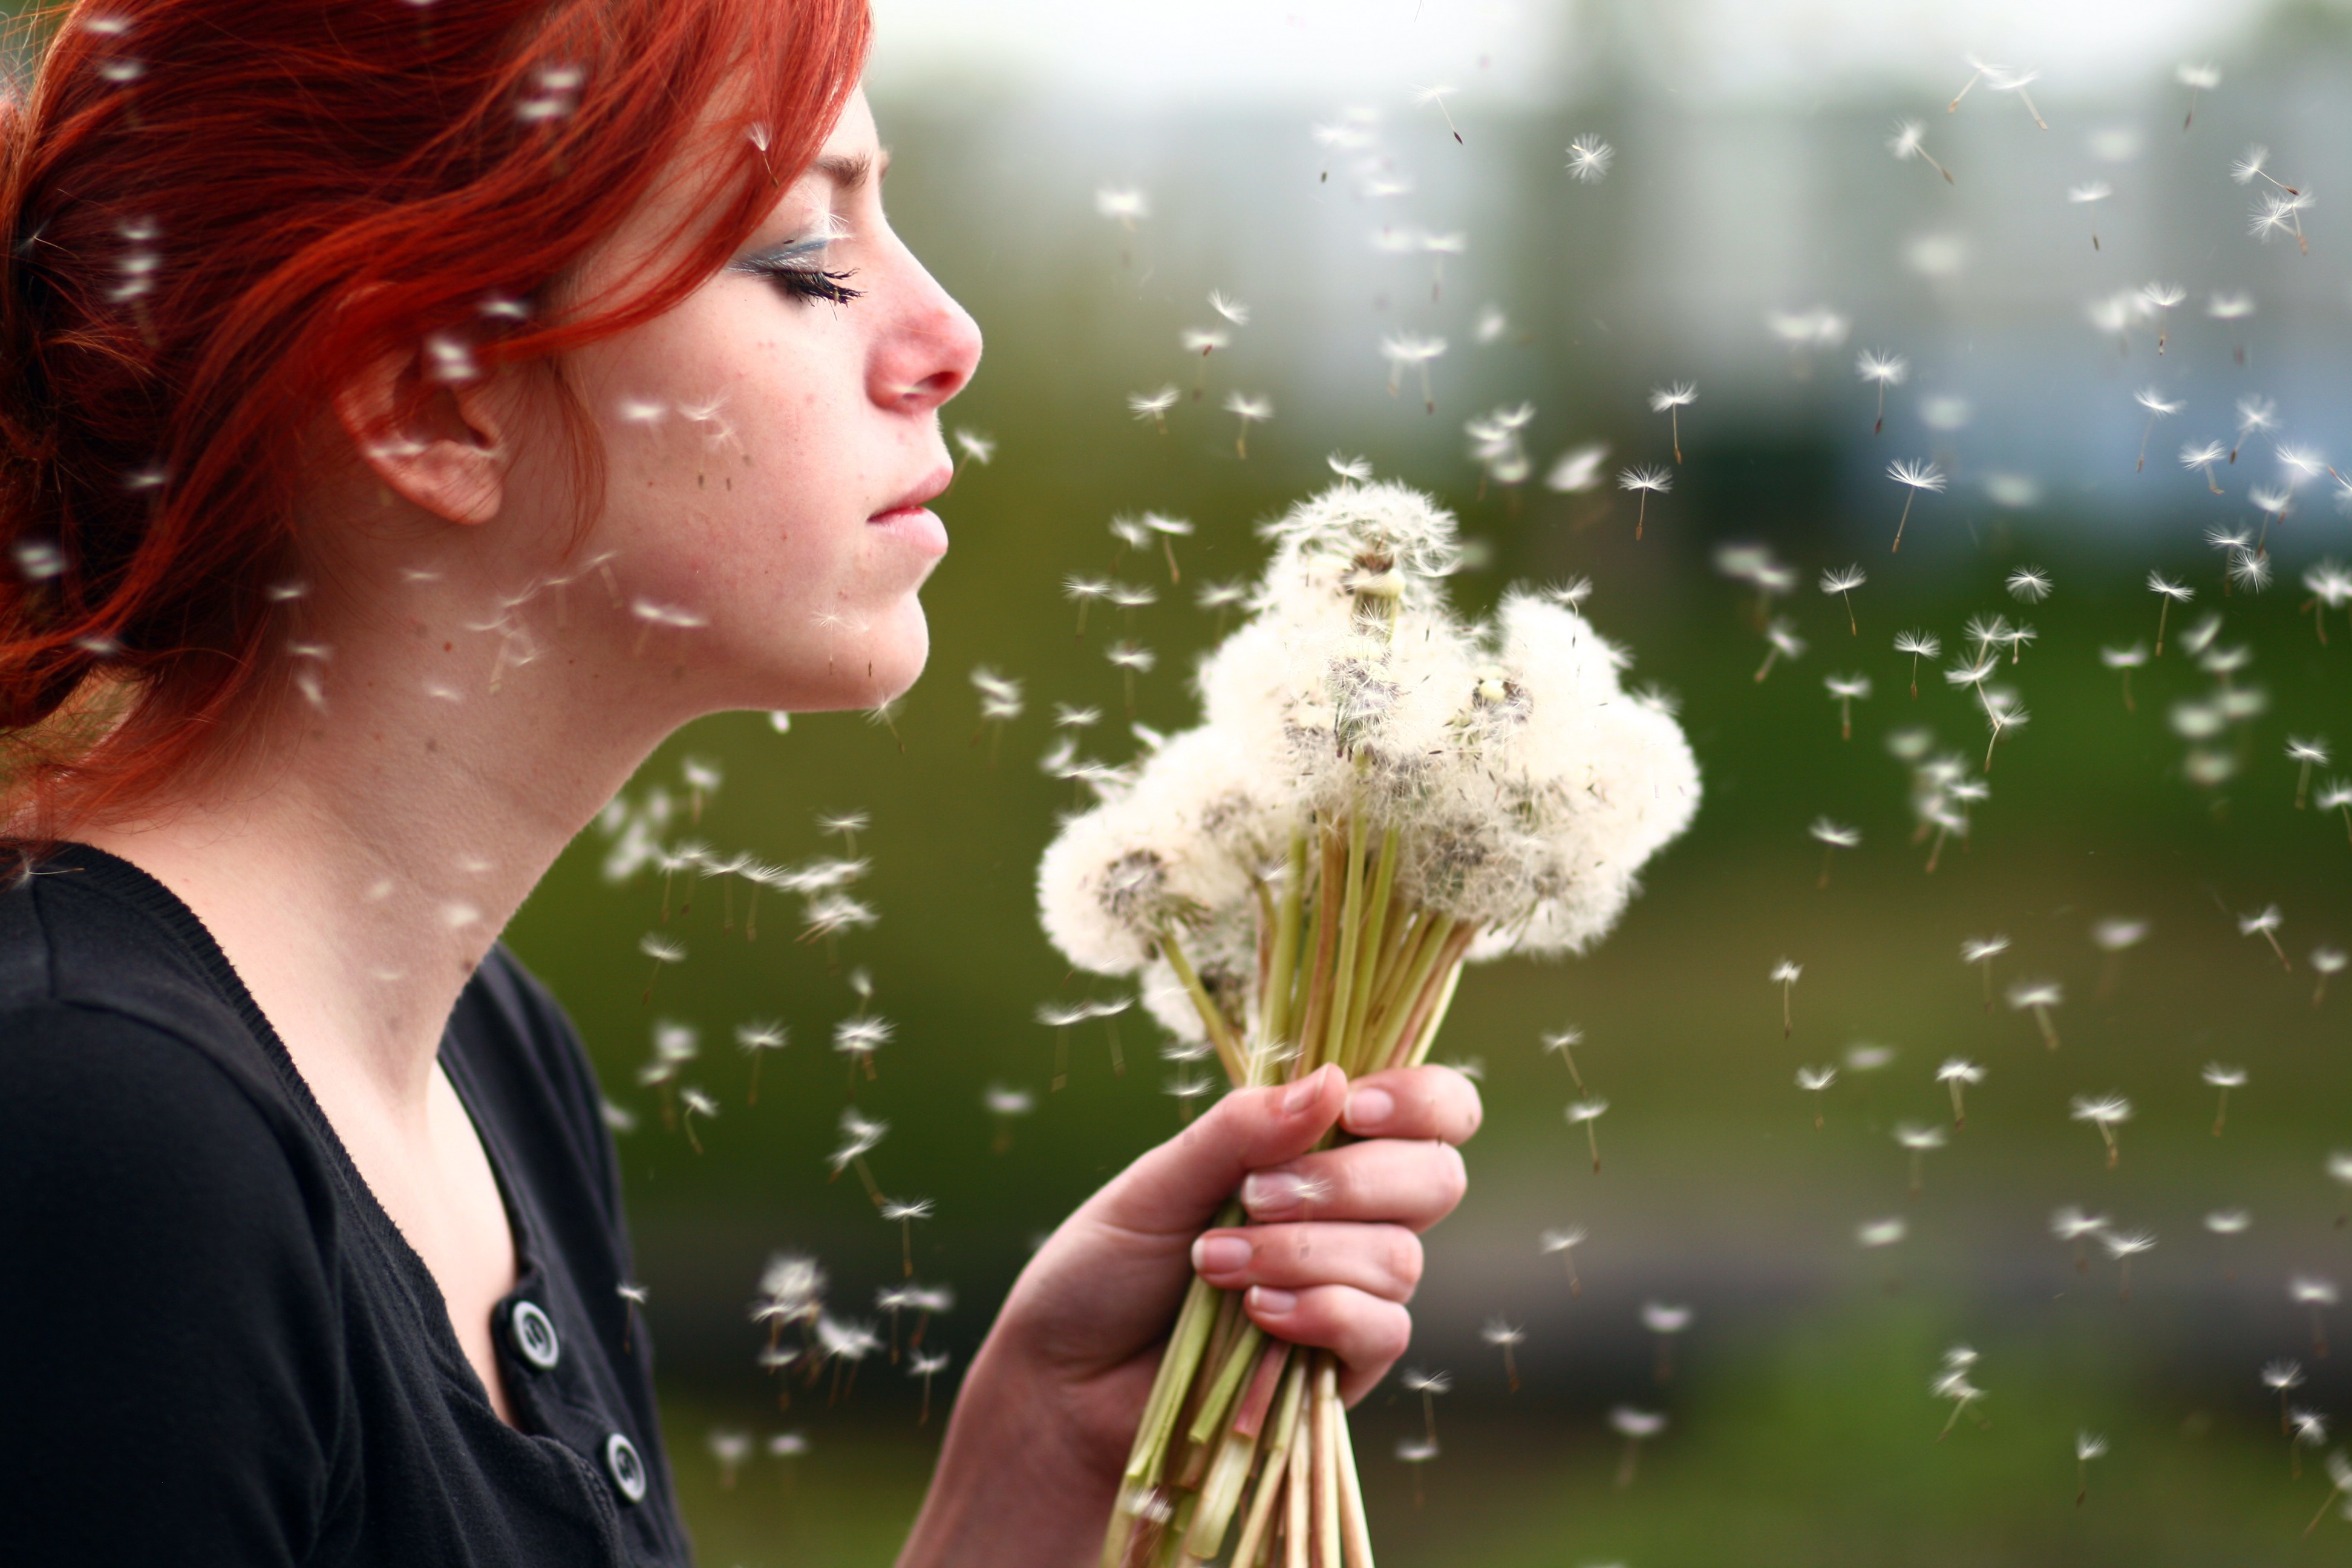 woman Flowers redheads deviantart HD Wallpaper